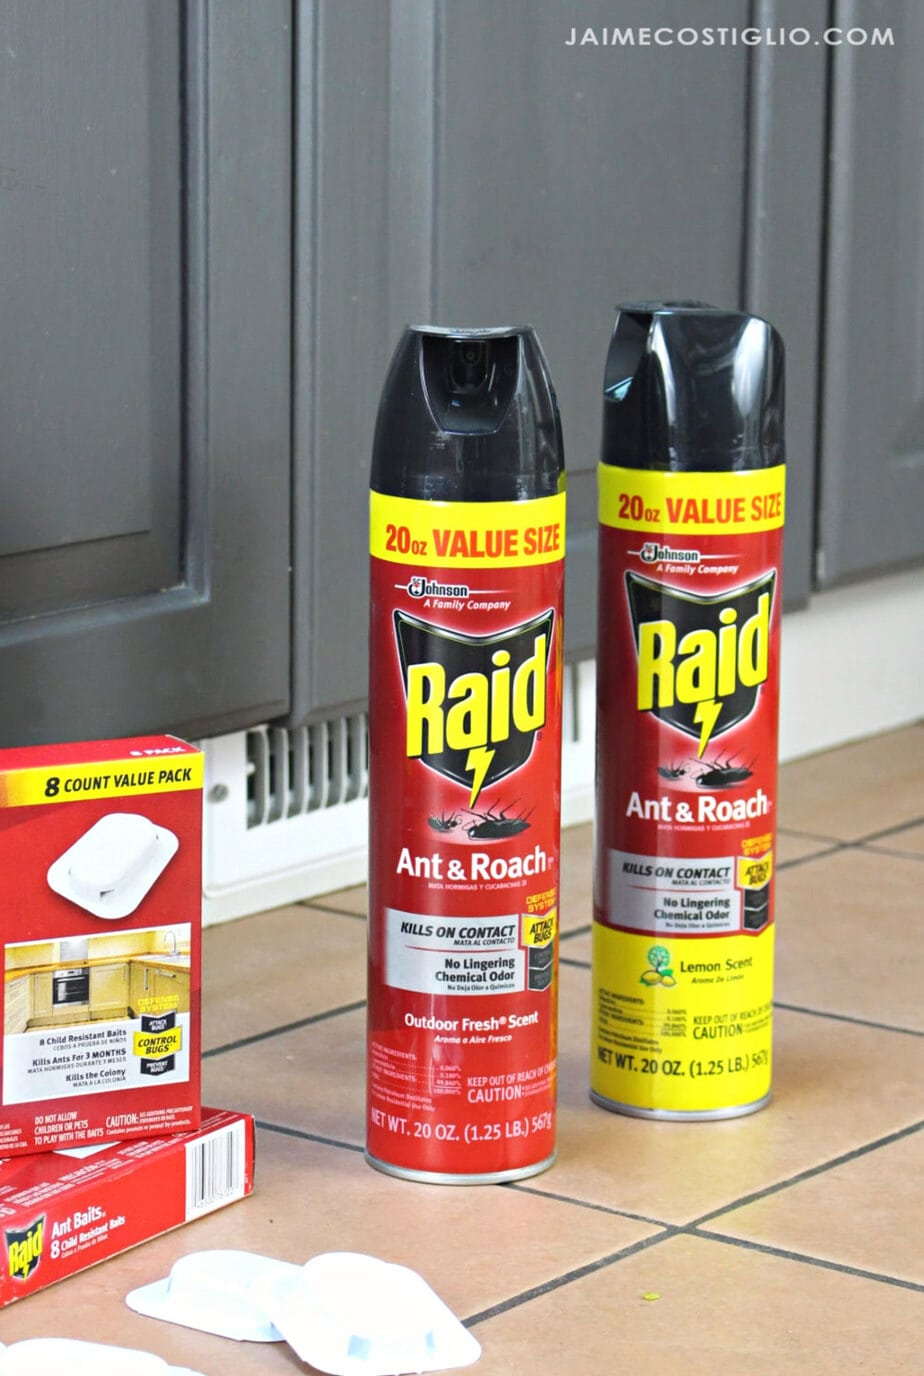 raid ant and roach spray